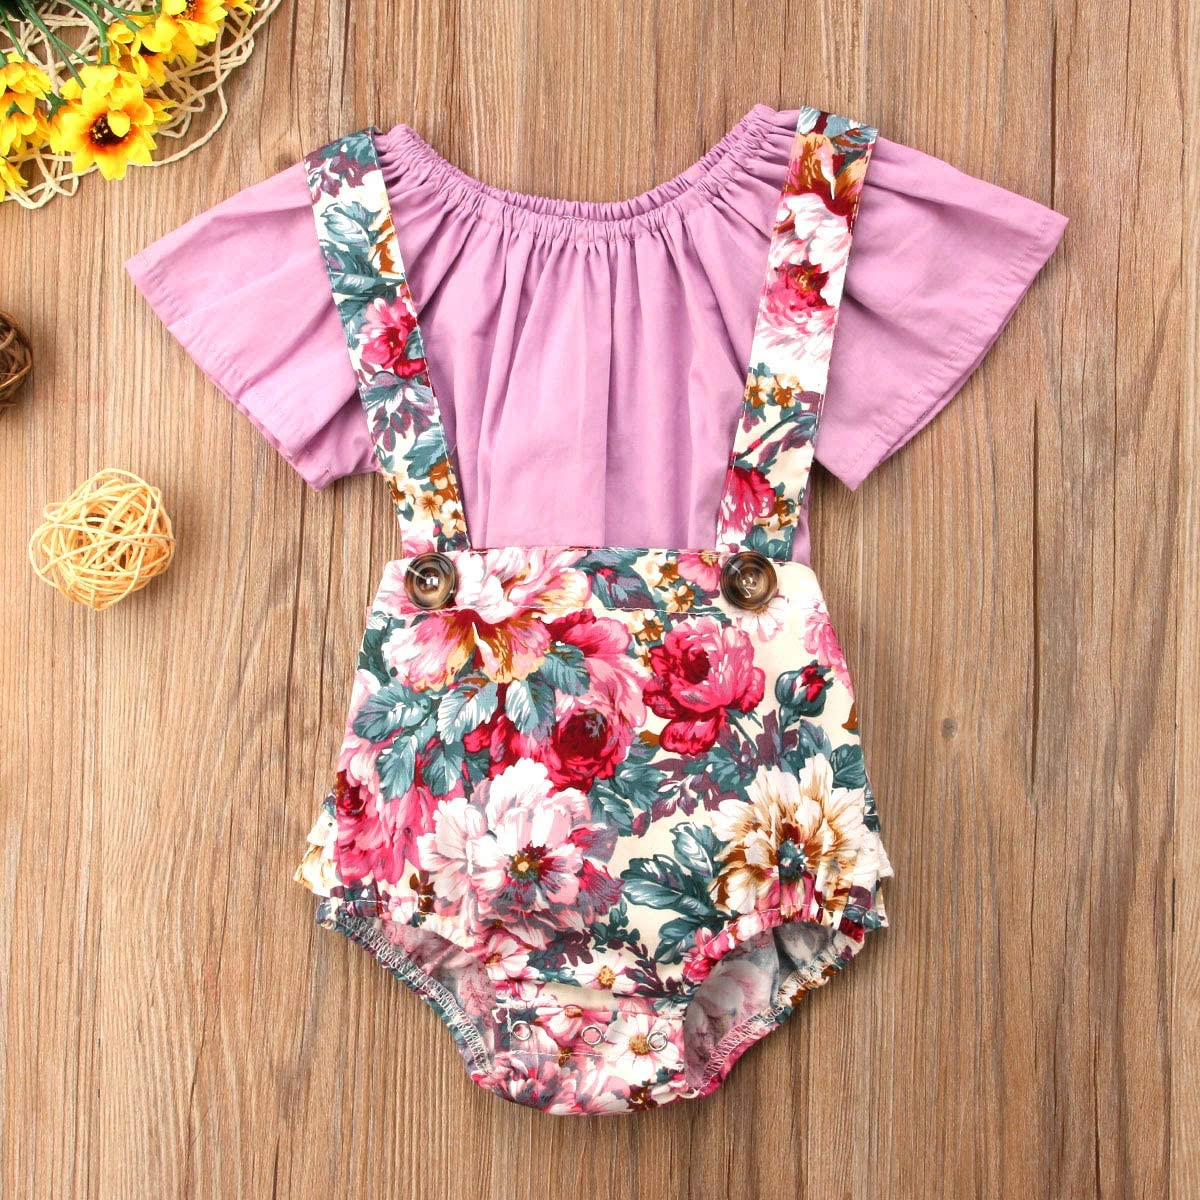 Ruffle Short Sleeve Top Outfit Clothes 2PCS Newborn Toddler Baby Girl Floral Suspender Shorts Bottom